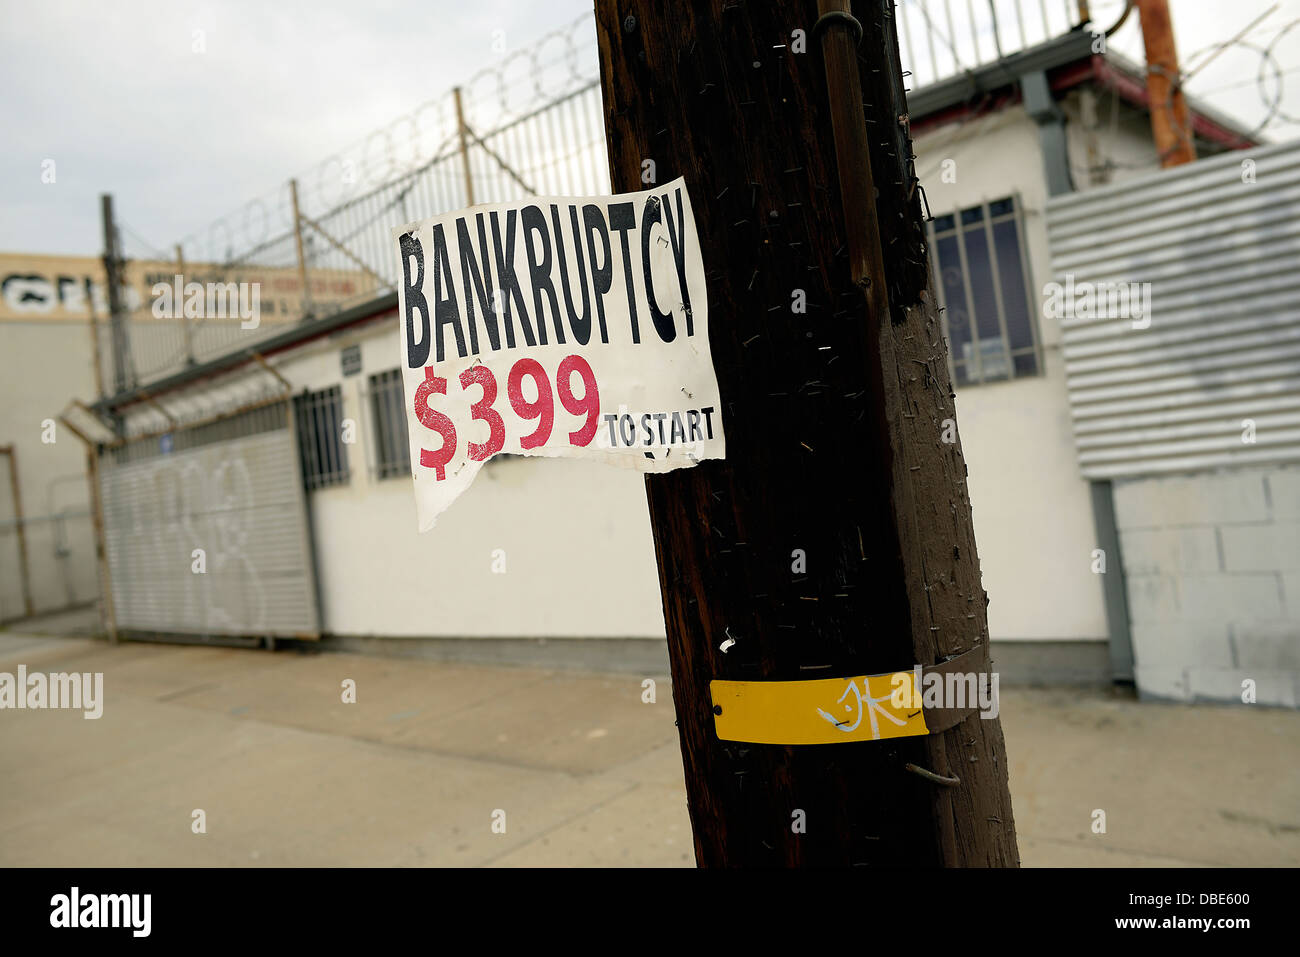 bankruptcy sign los angeles california - Stock Image